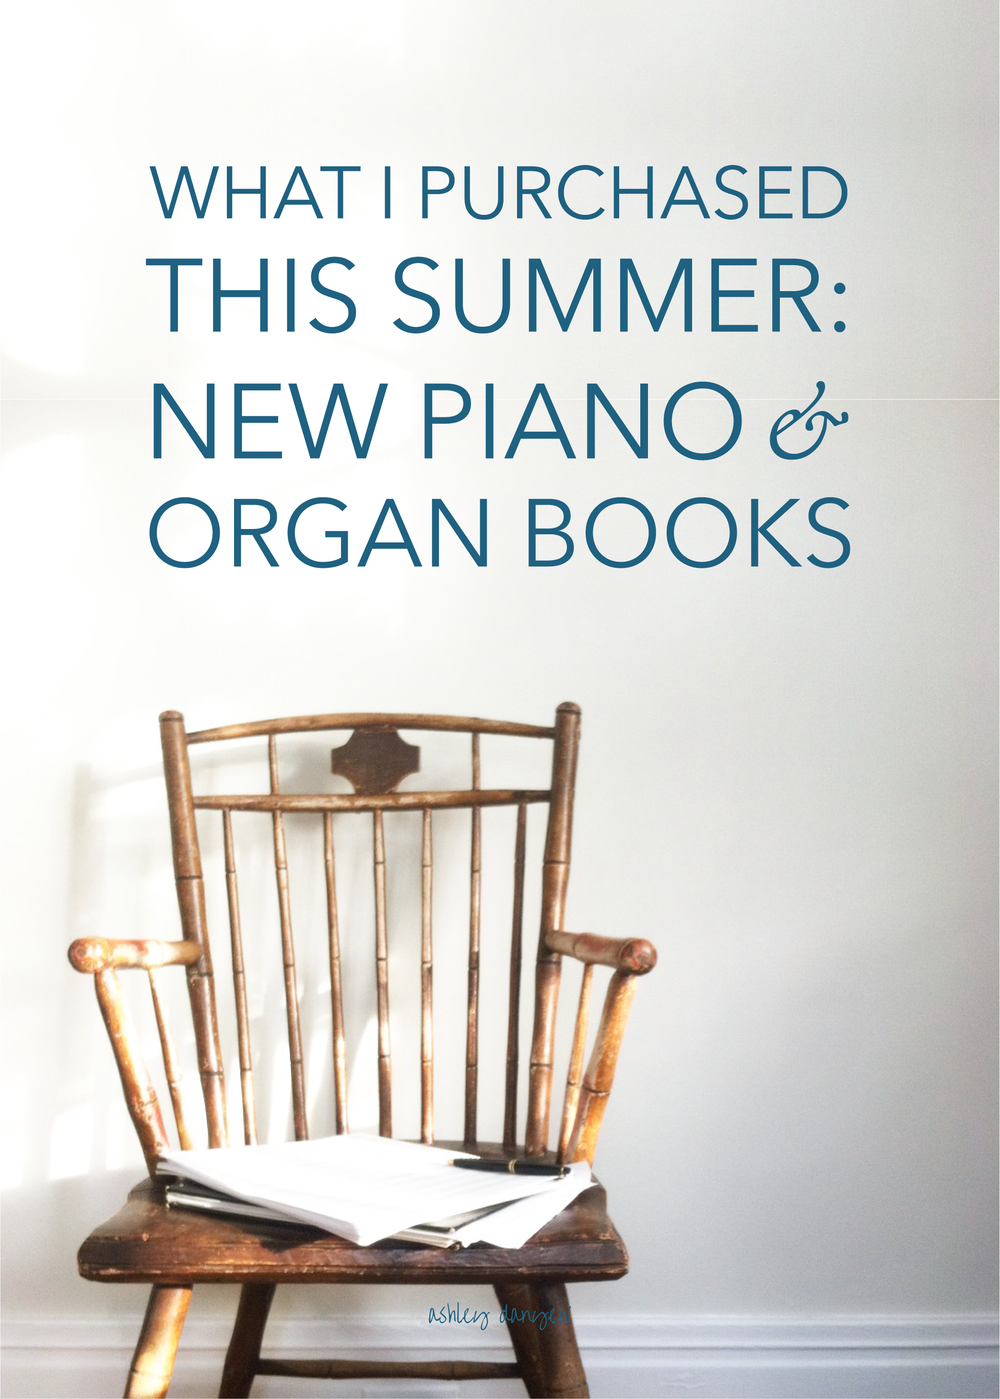 Copy of What I Purchased This Summer: New Piano and Organ Books